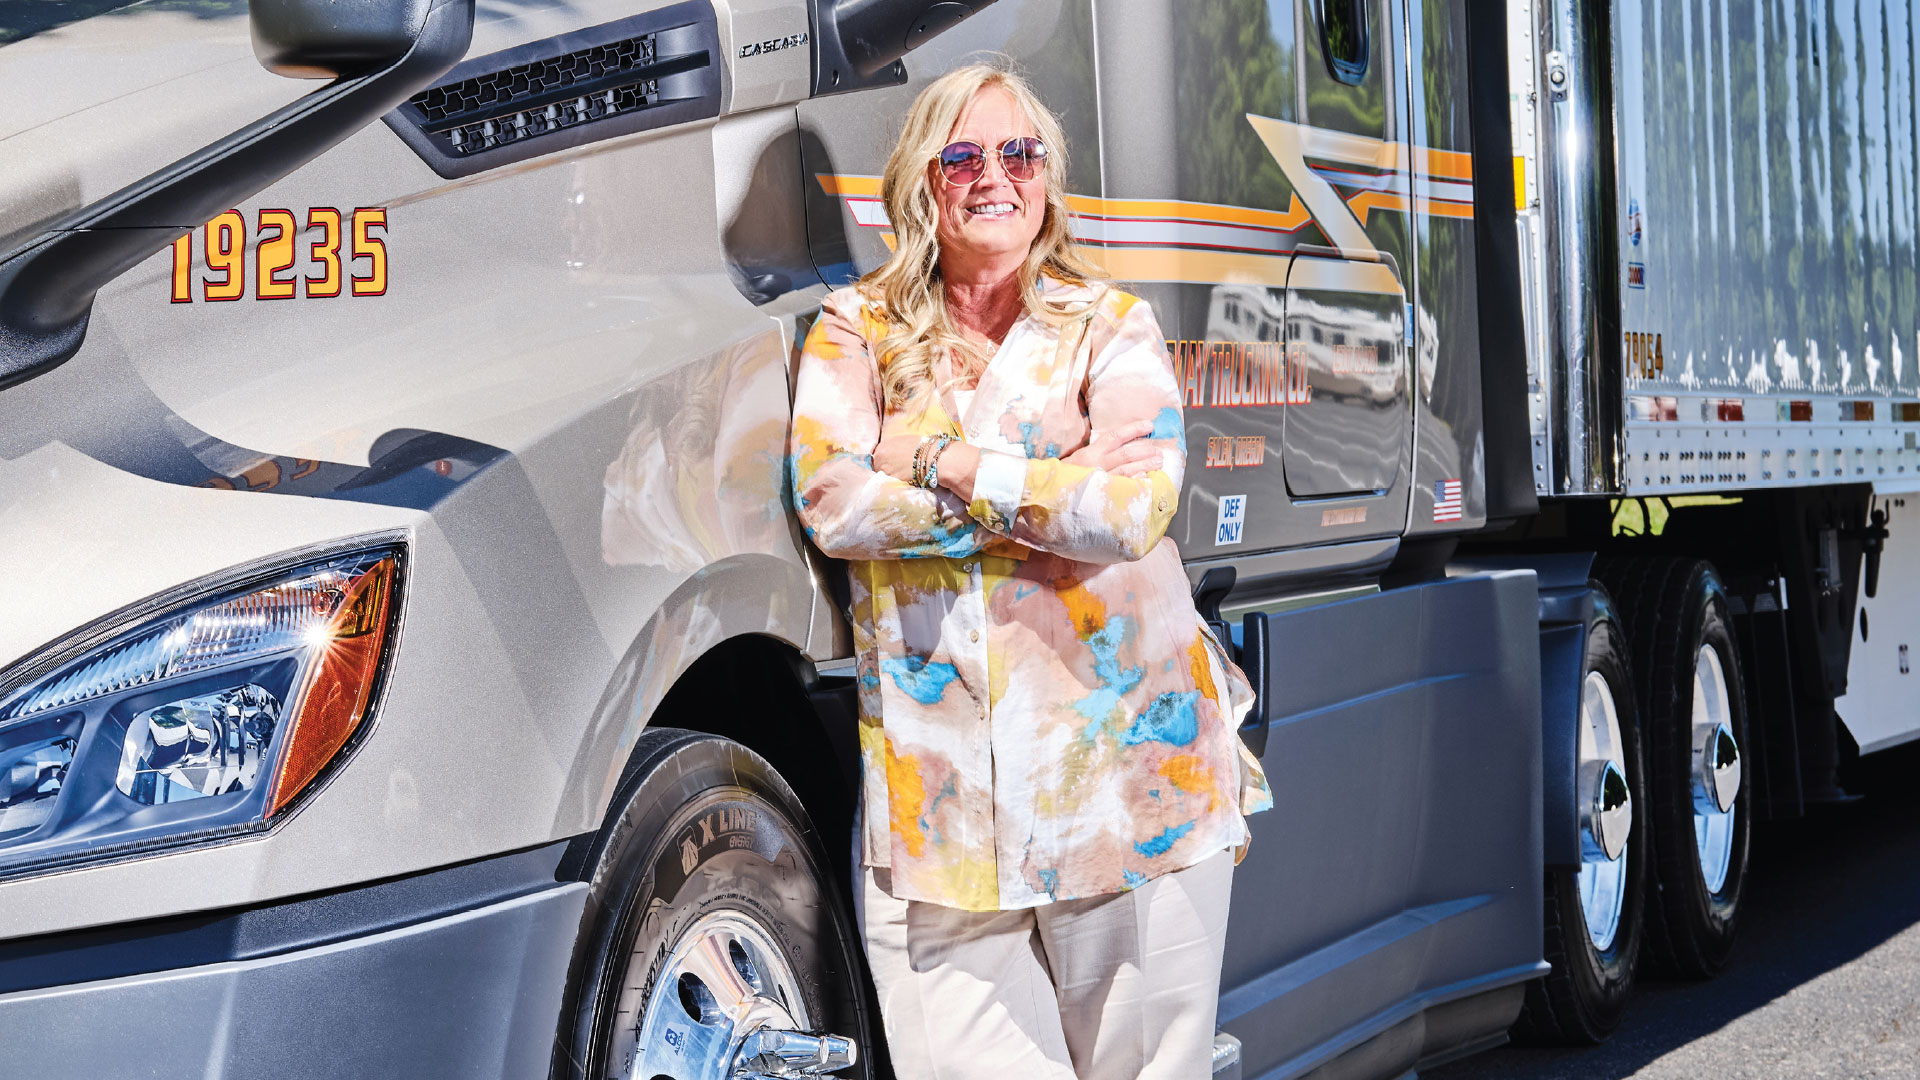 Becki Wagoner poses in front of a silver semi truck